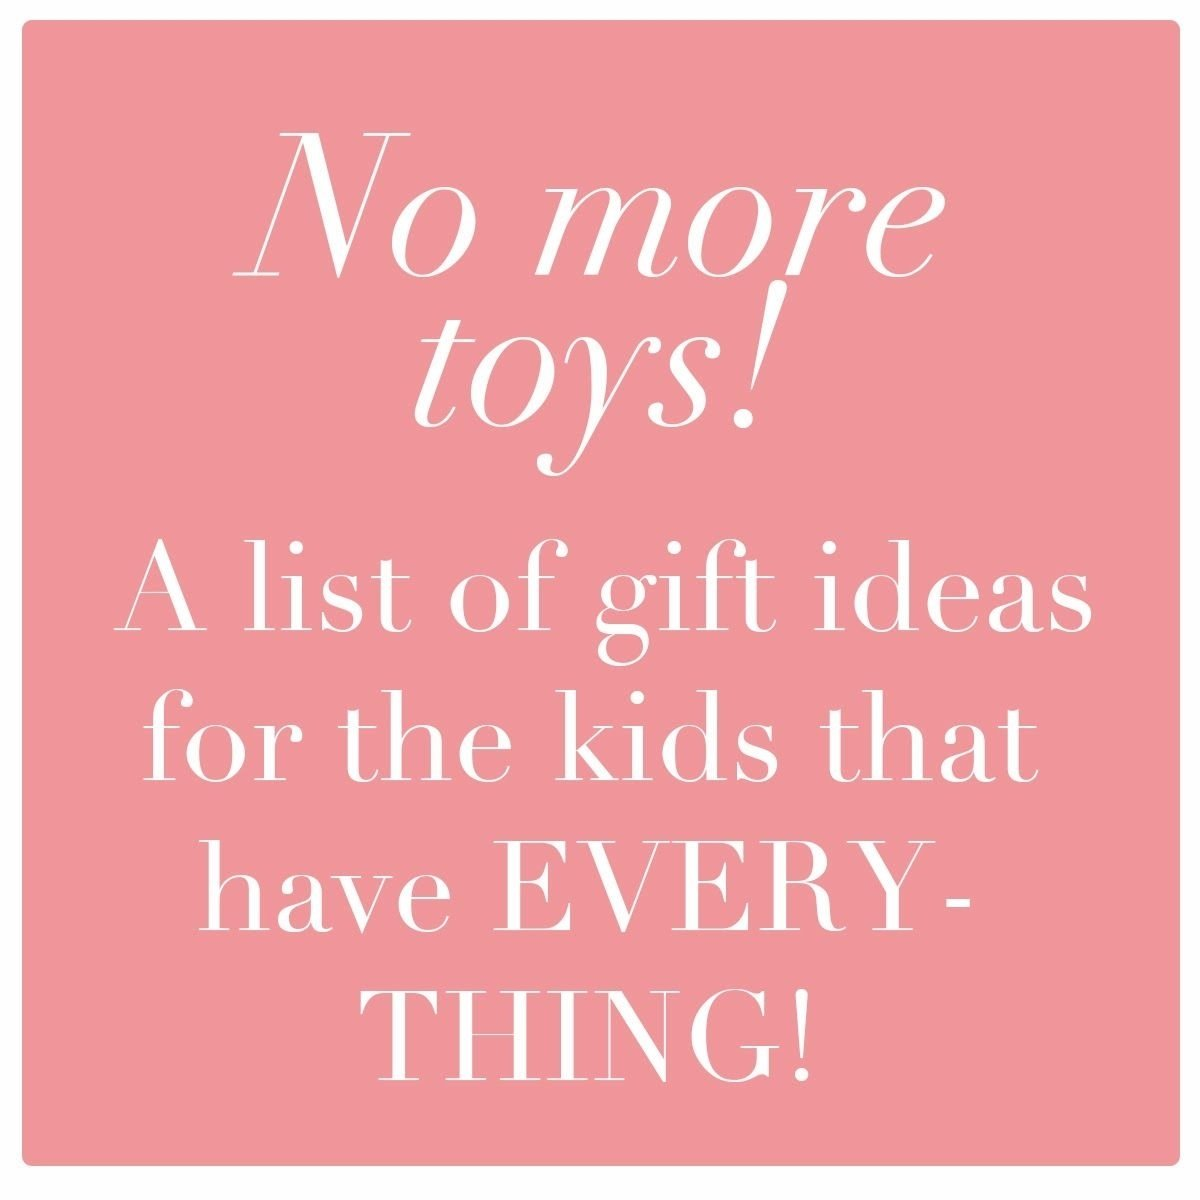 10 Attractive Christmas Gift Ideas For Kids Who Have Everything naptime tales gift ideas for the kids that have everything 2020